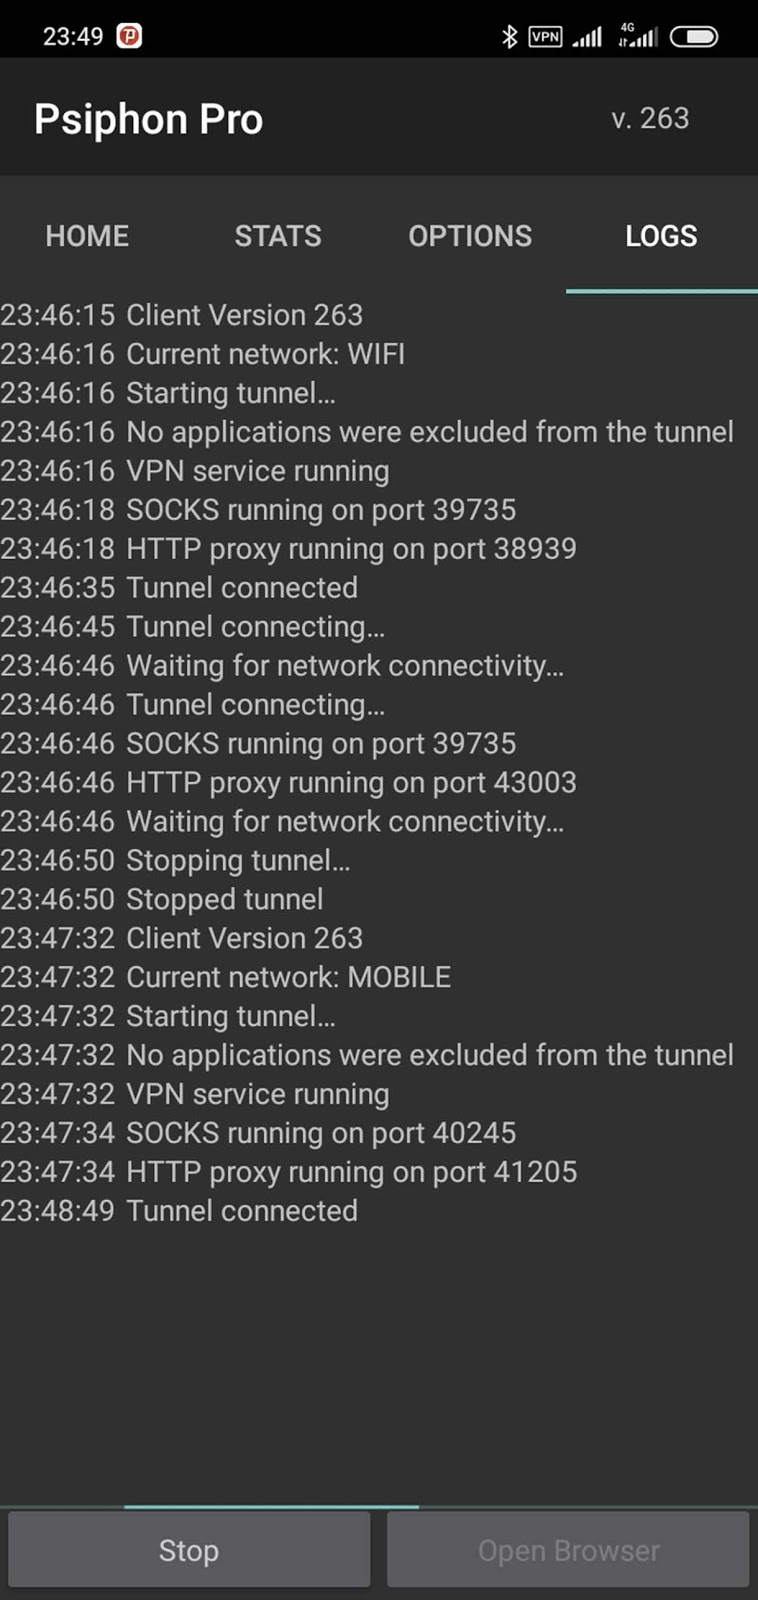 Tap on connect to obtain your free internet access using Psiphon